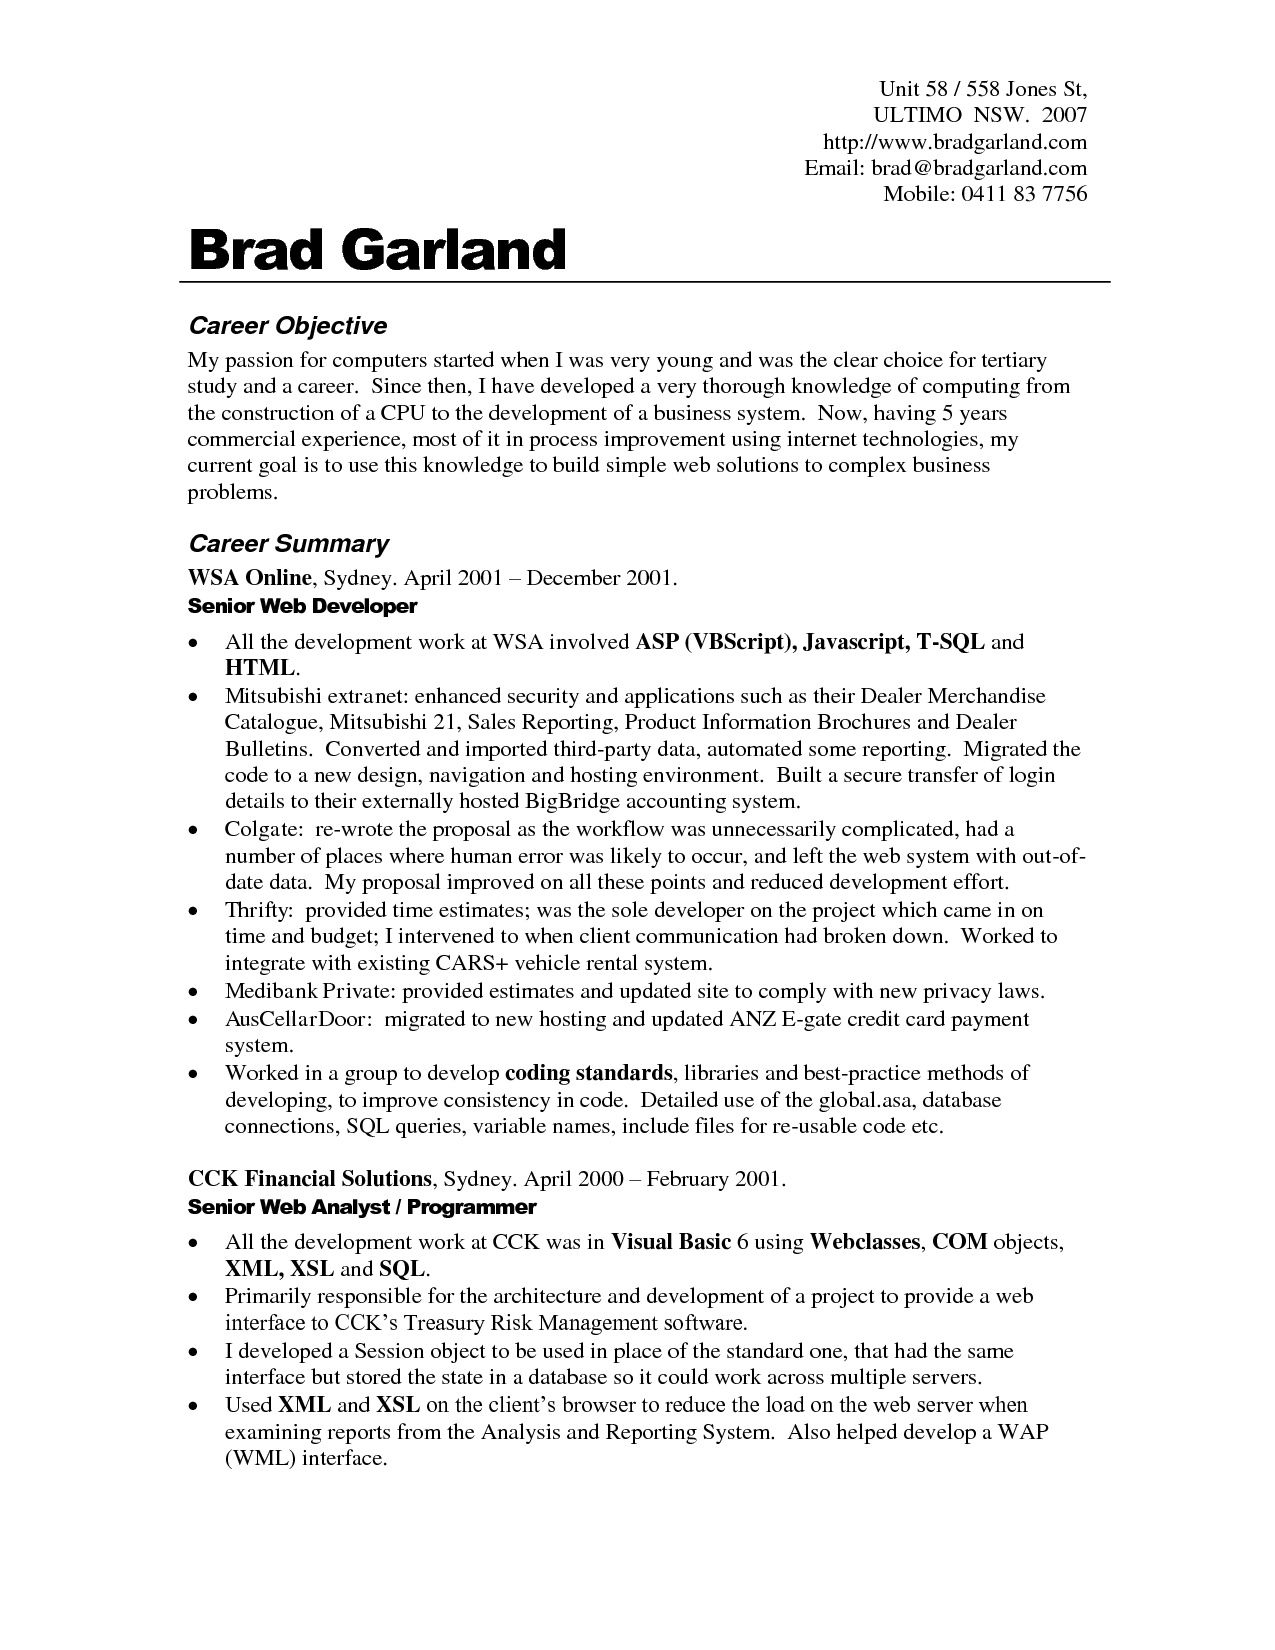 career objective resume examples for example your training goals and objectives rufoot resumes - Job Objective For A Resume